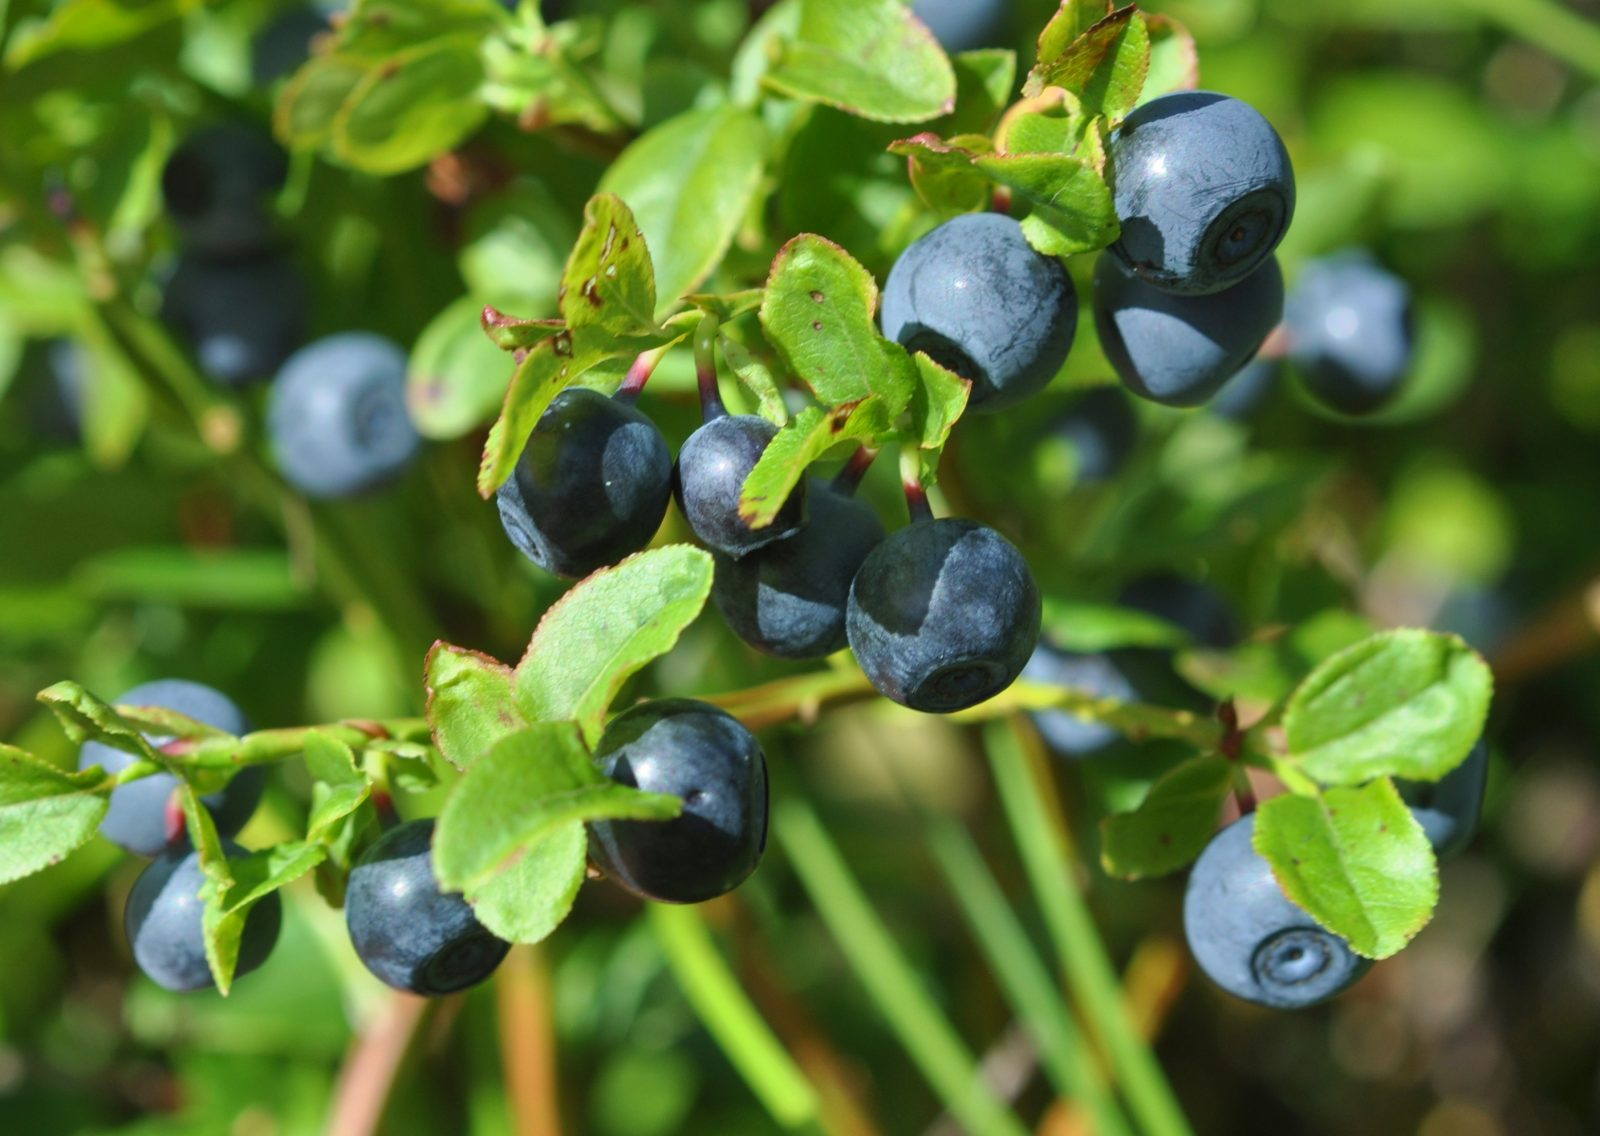 Hotel Ivalo-Berry-picking-Blueberry